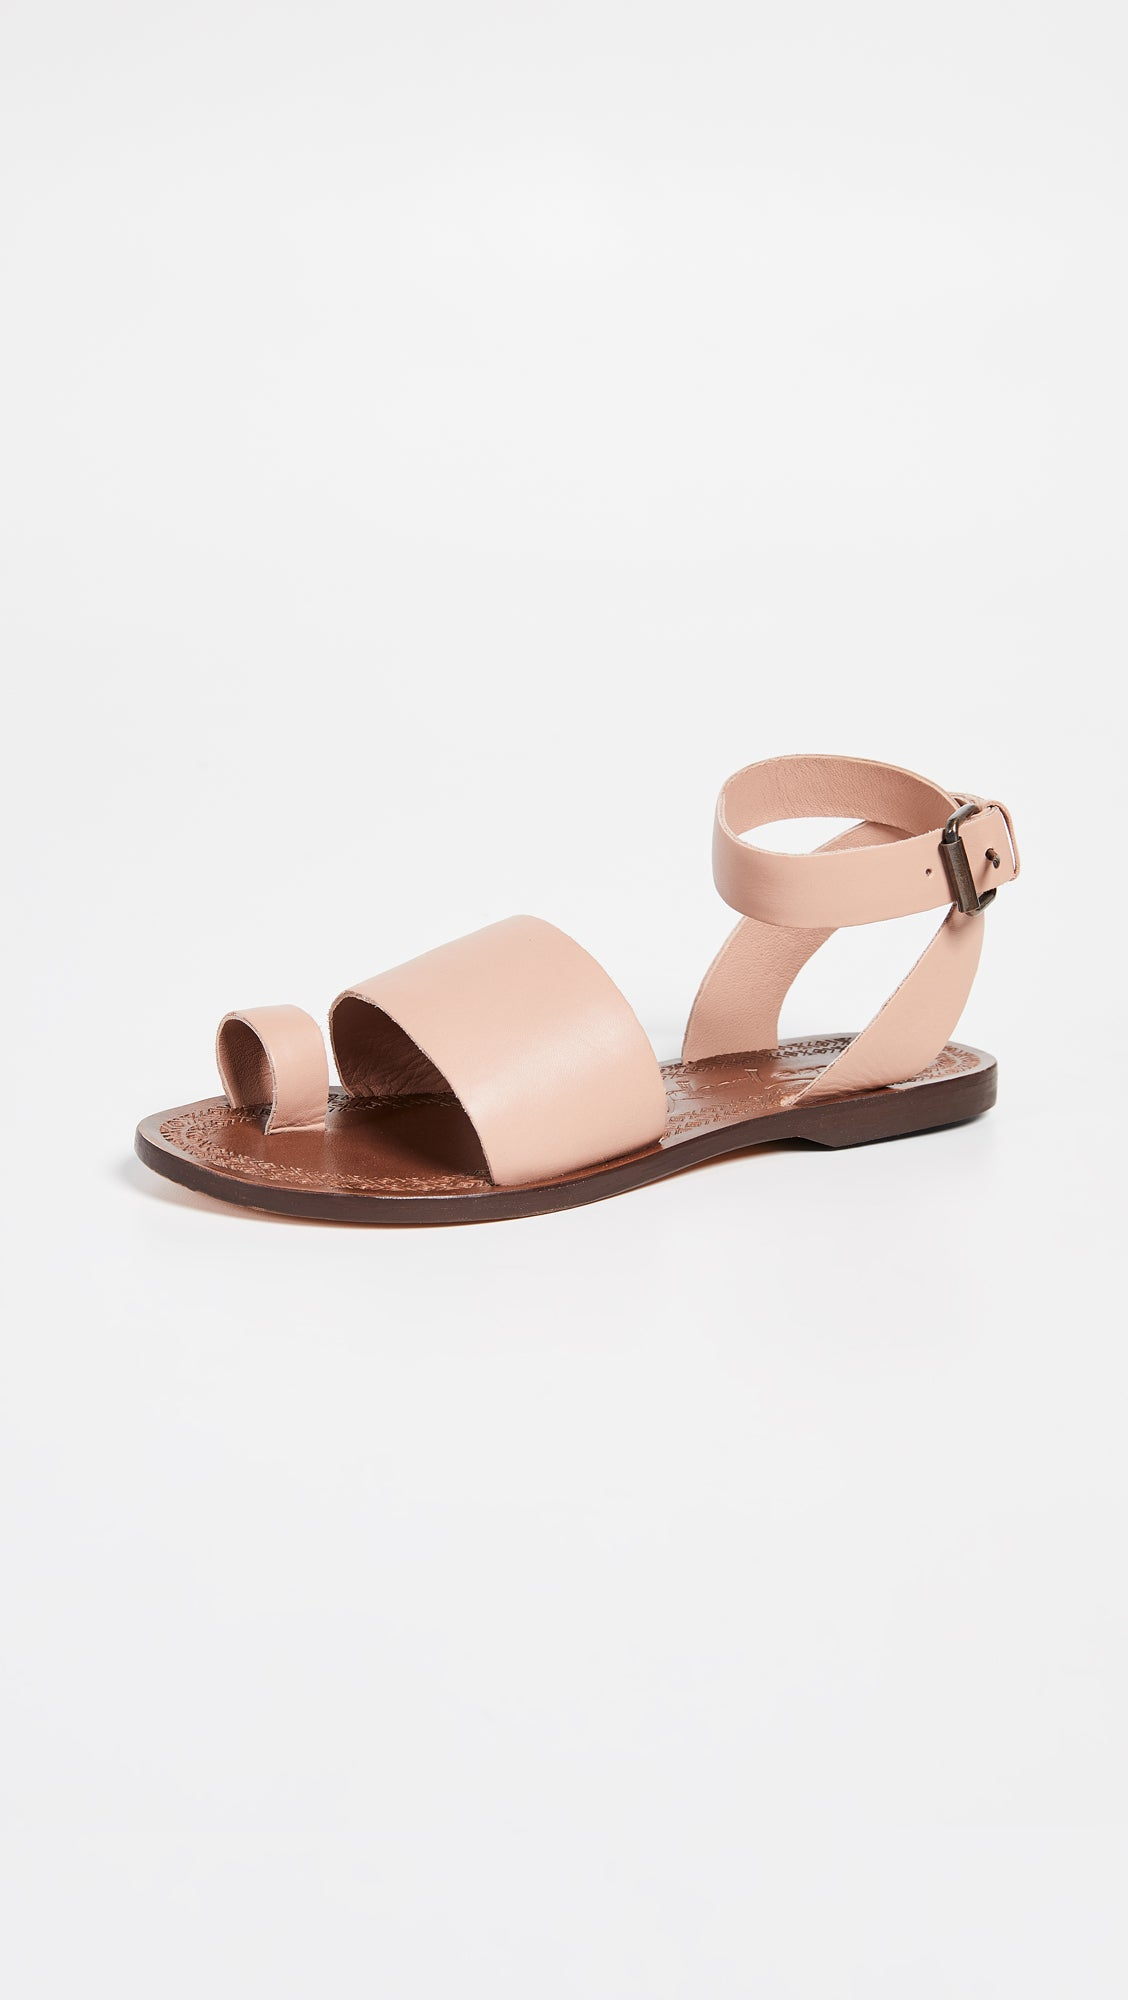 Free People Torrence Sandal Rose Shoes Pink Leather Strap Toe Ring